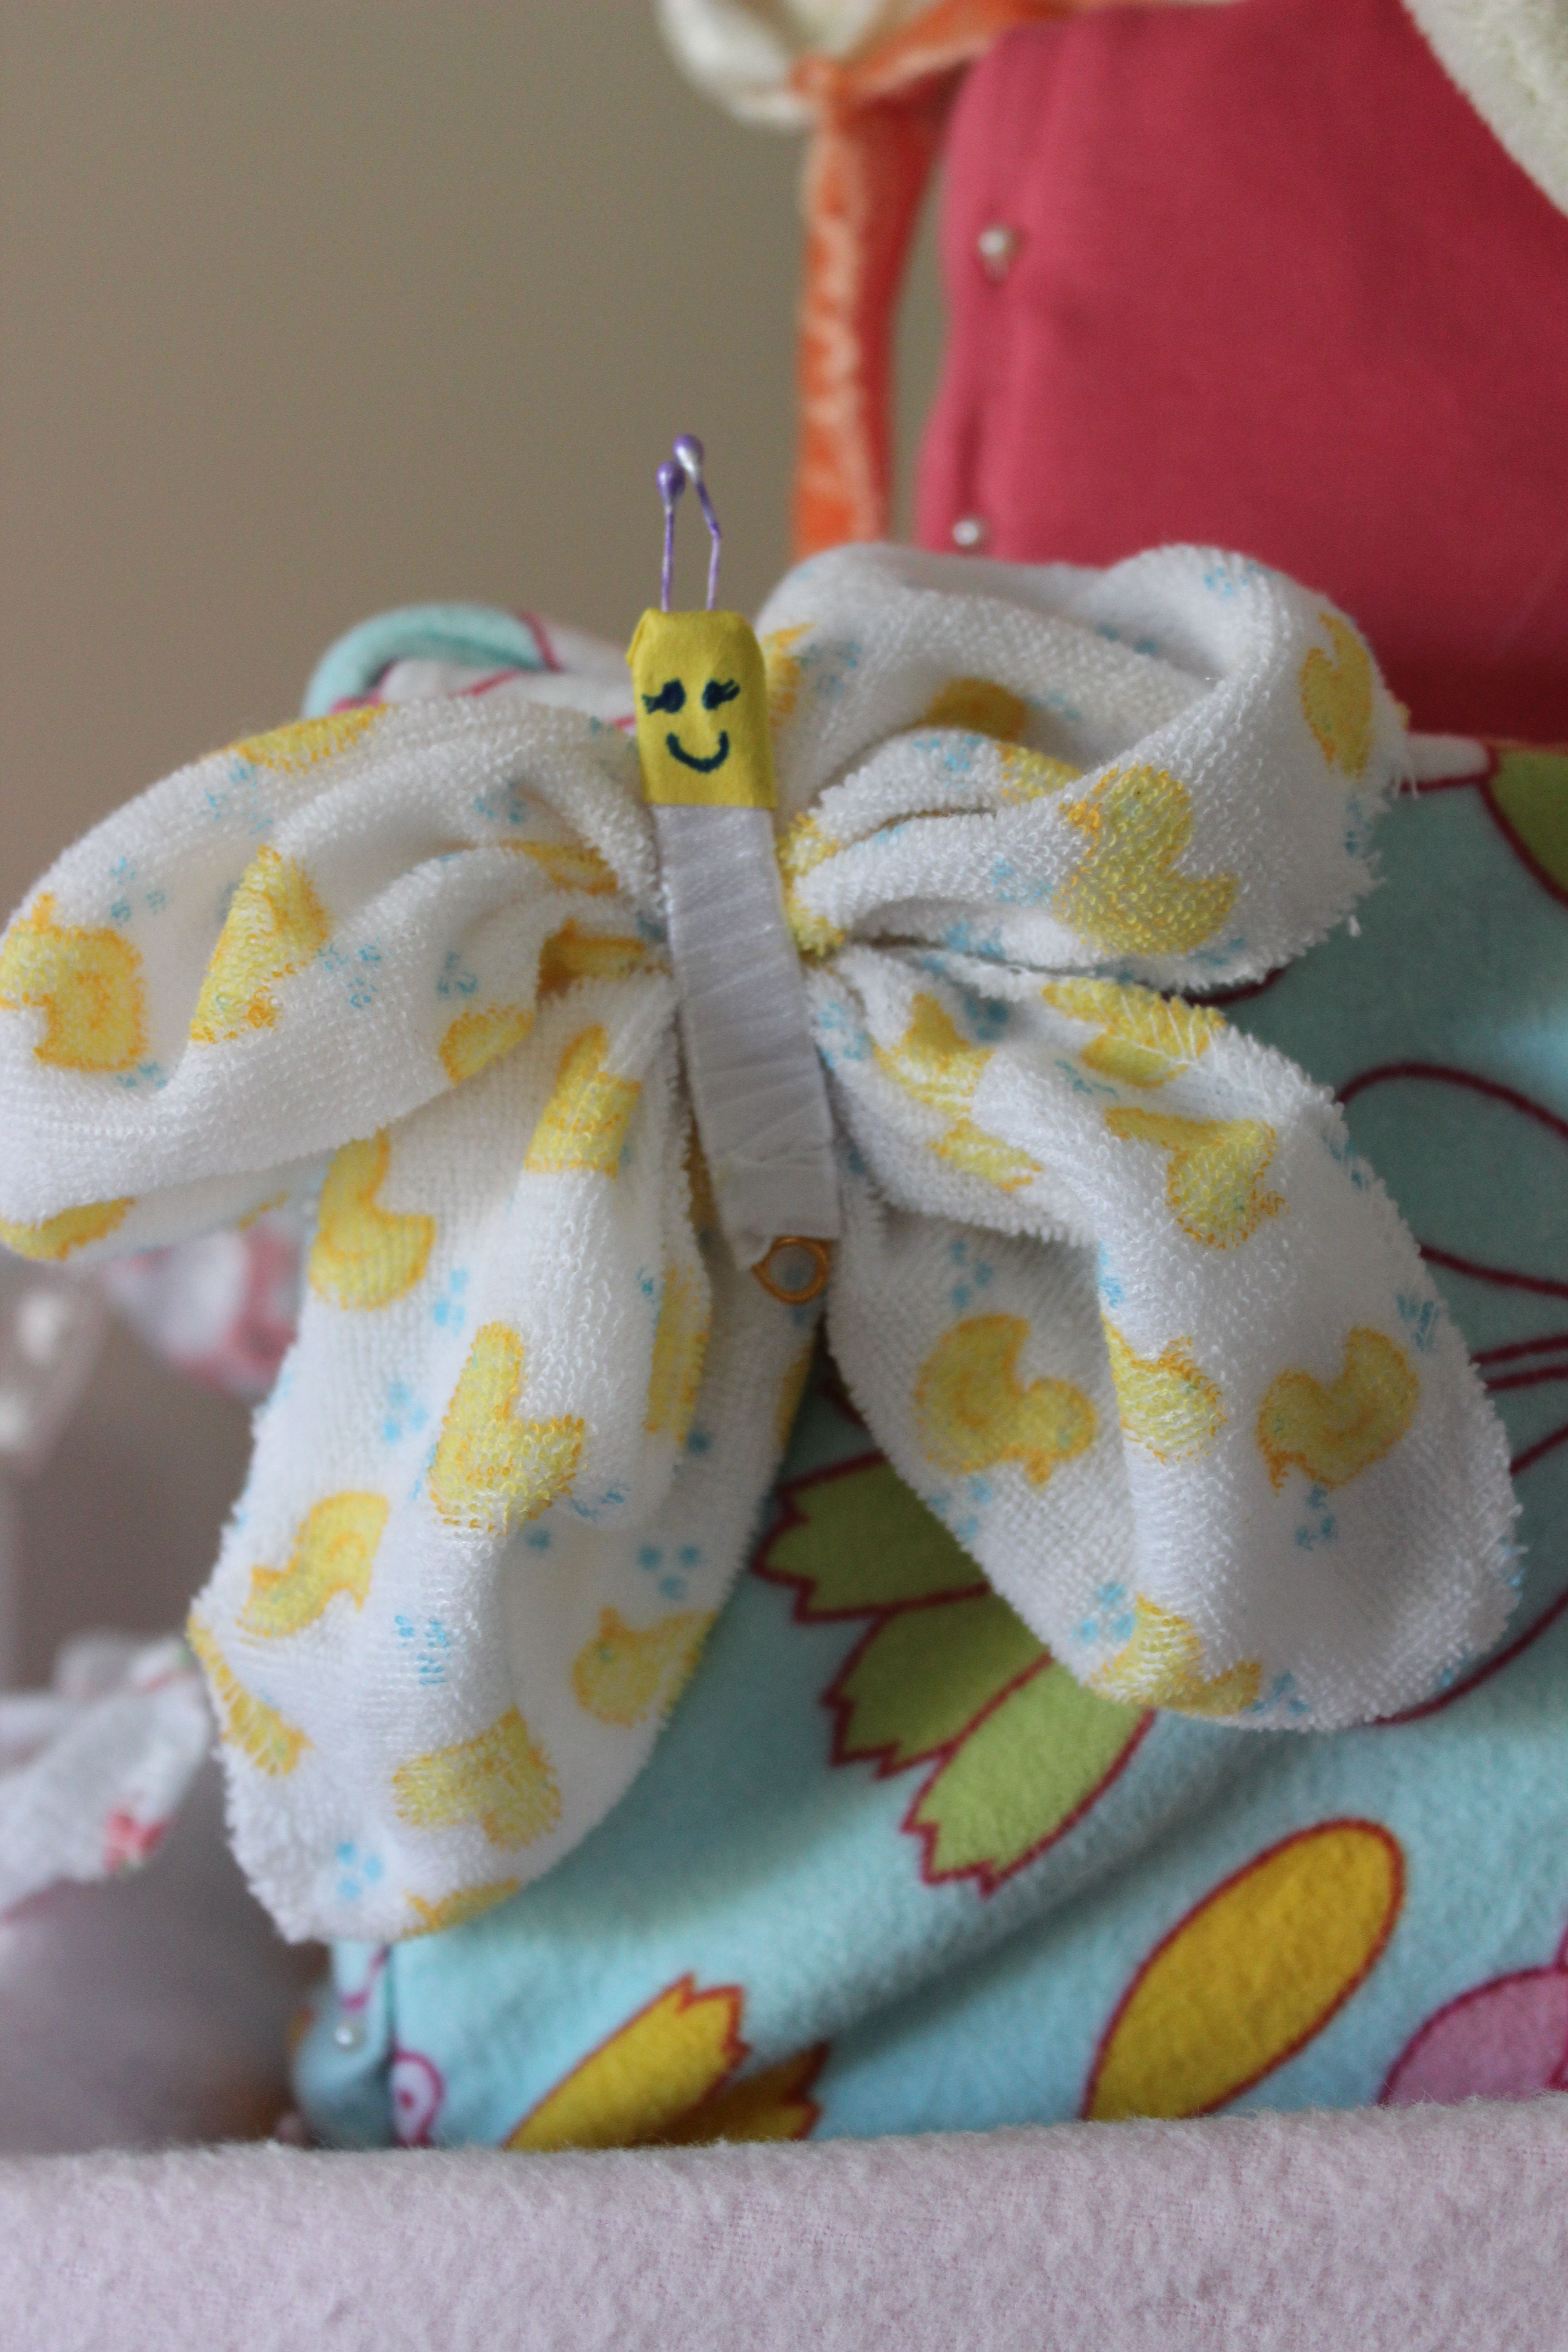 Pliage Serviette Bain Butterfly For Diaper Cake Made From Baby Washcloth Safety Pin